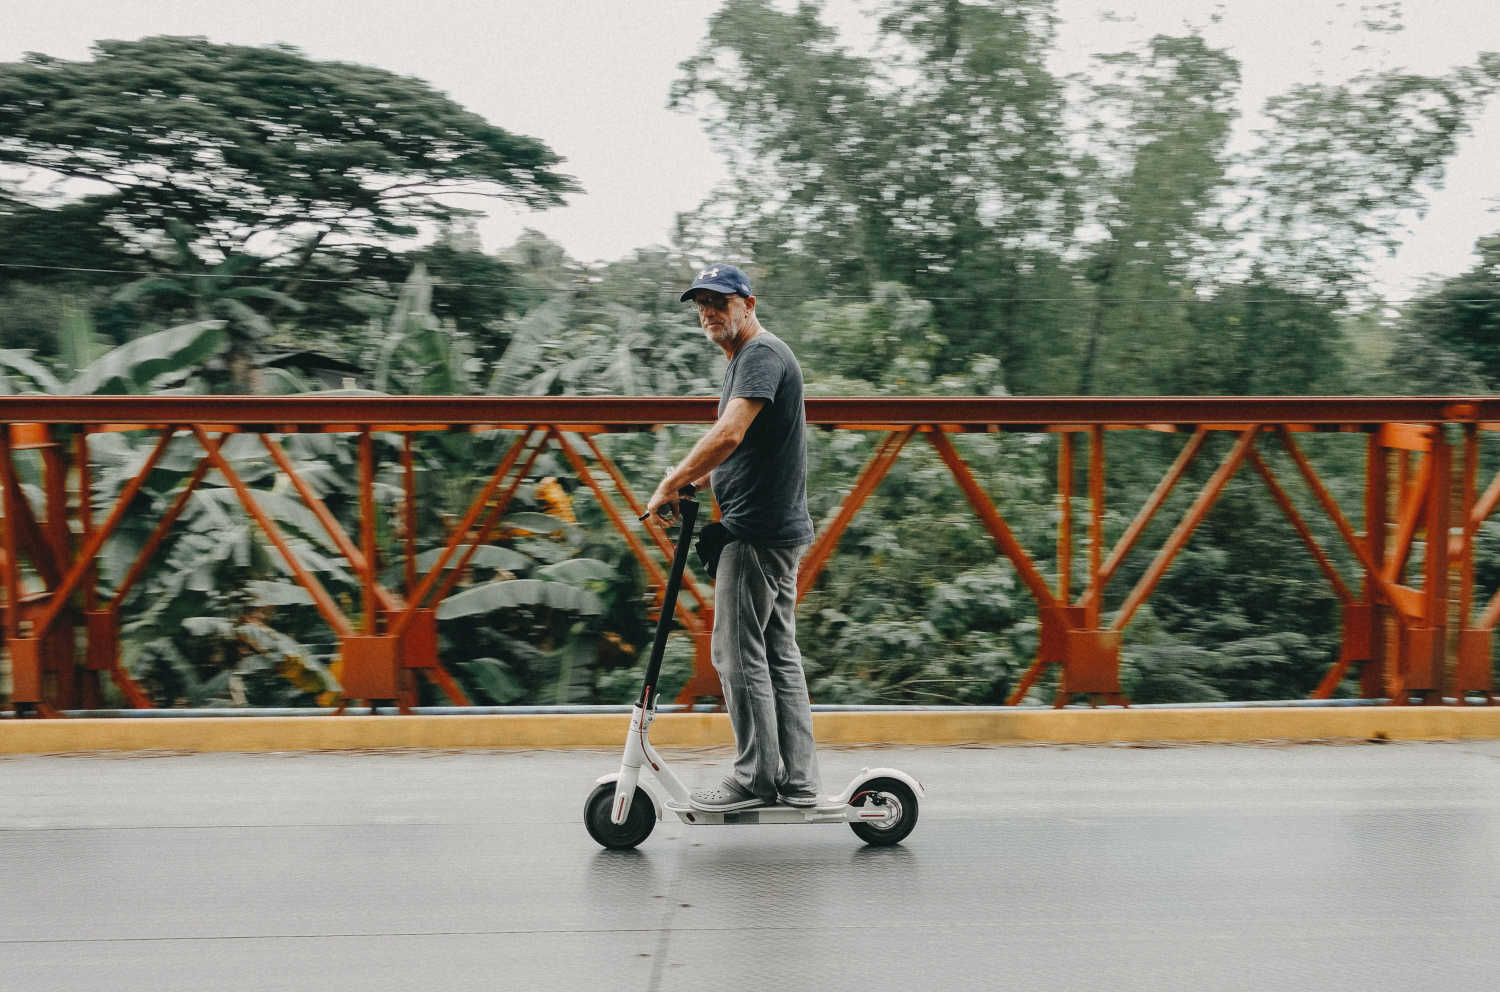 A man rides his electric scooter on a bridge.